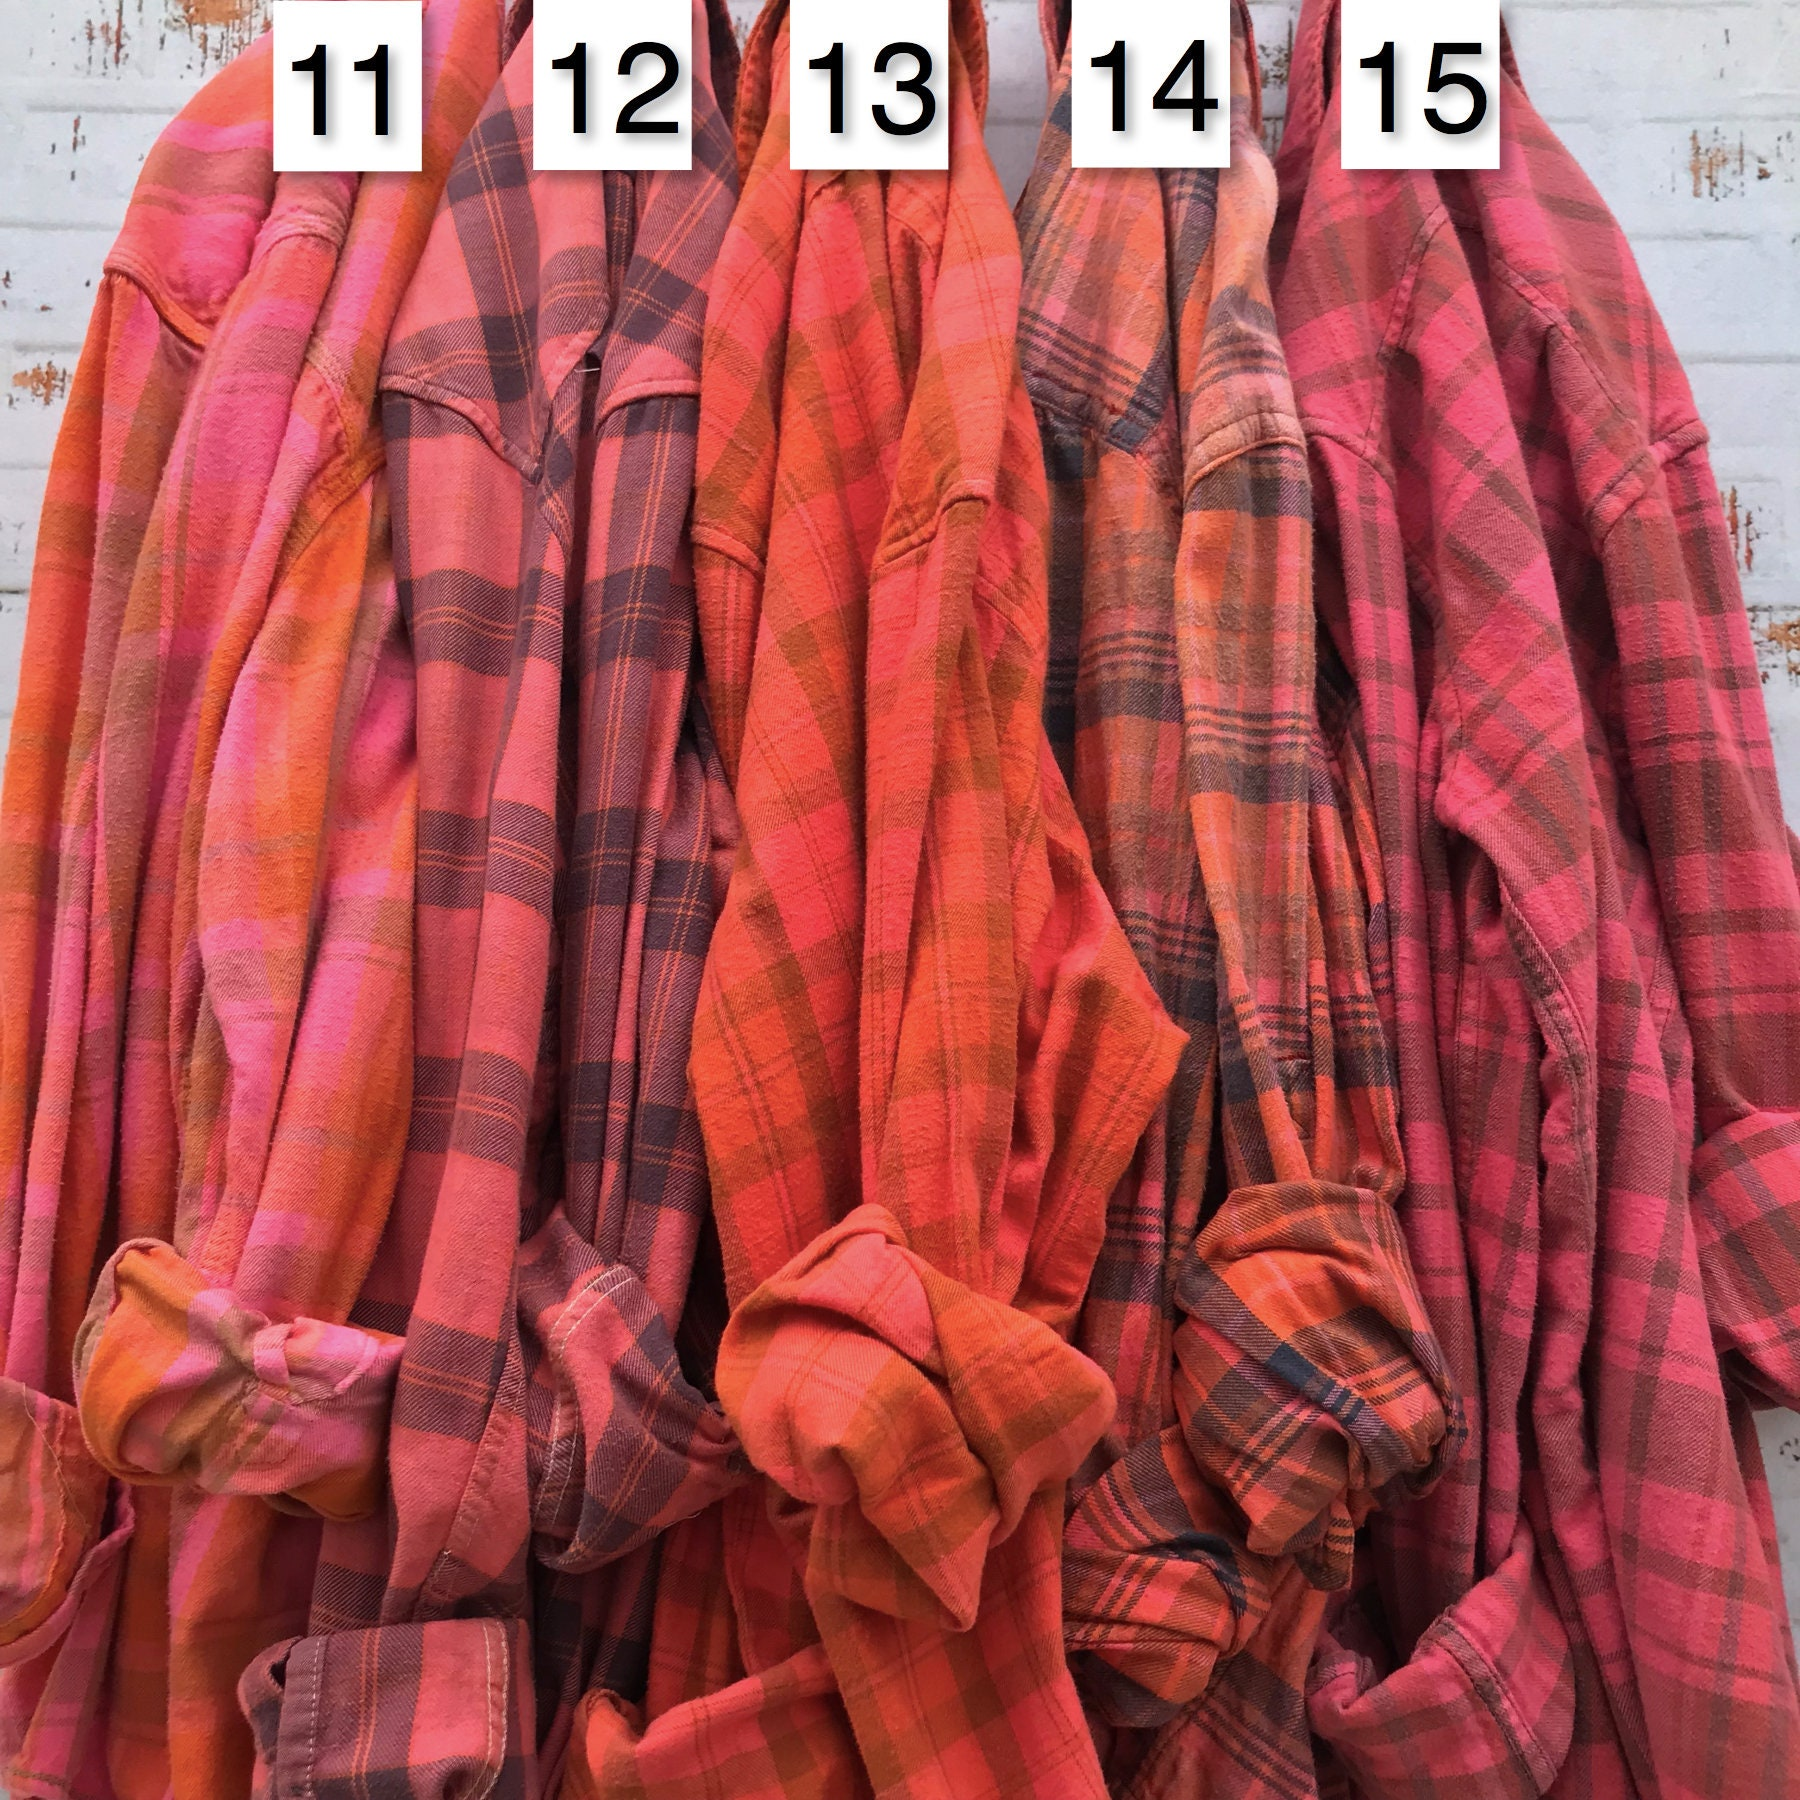 flannel shirts for getting ready plaid button down bridesmaids shirt SUMMER SOIREE Mismatched Bridesmaid Flannels alt bridal party robe